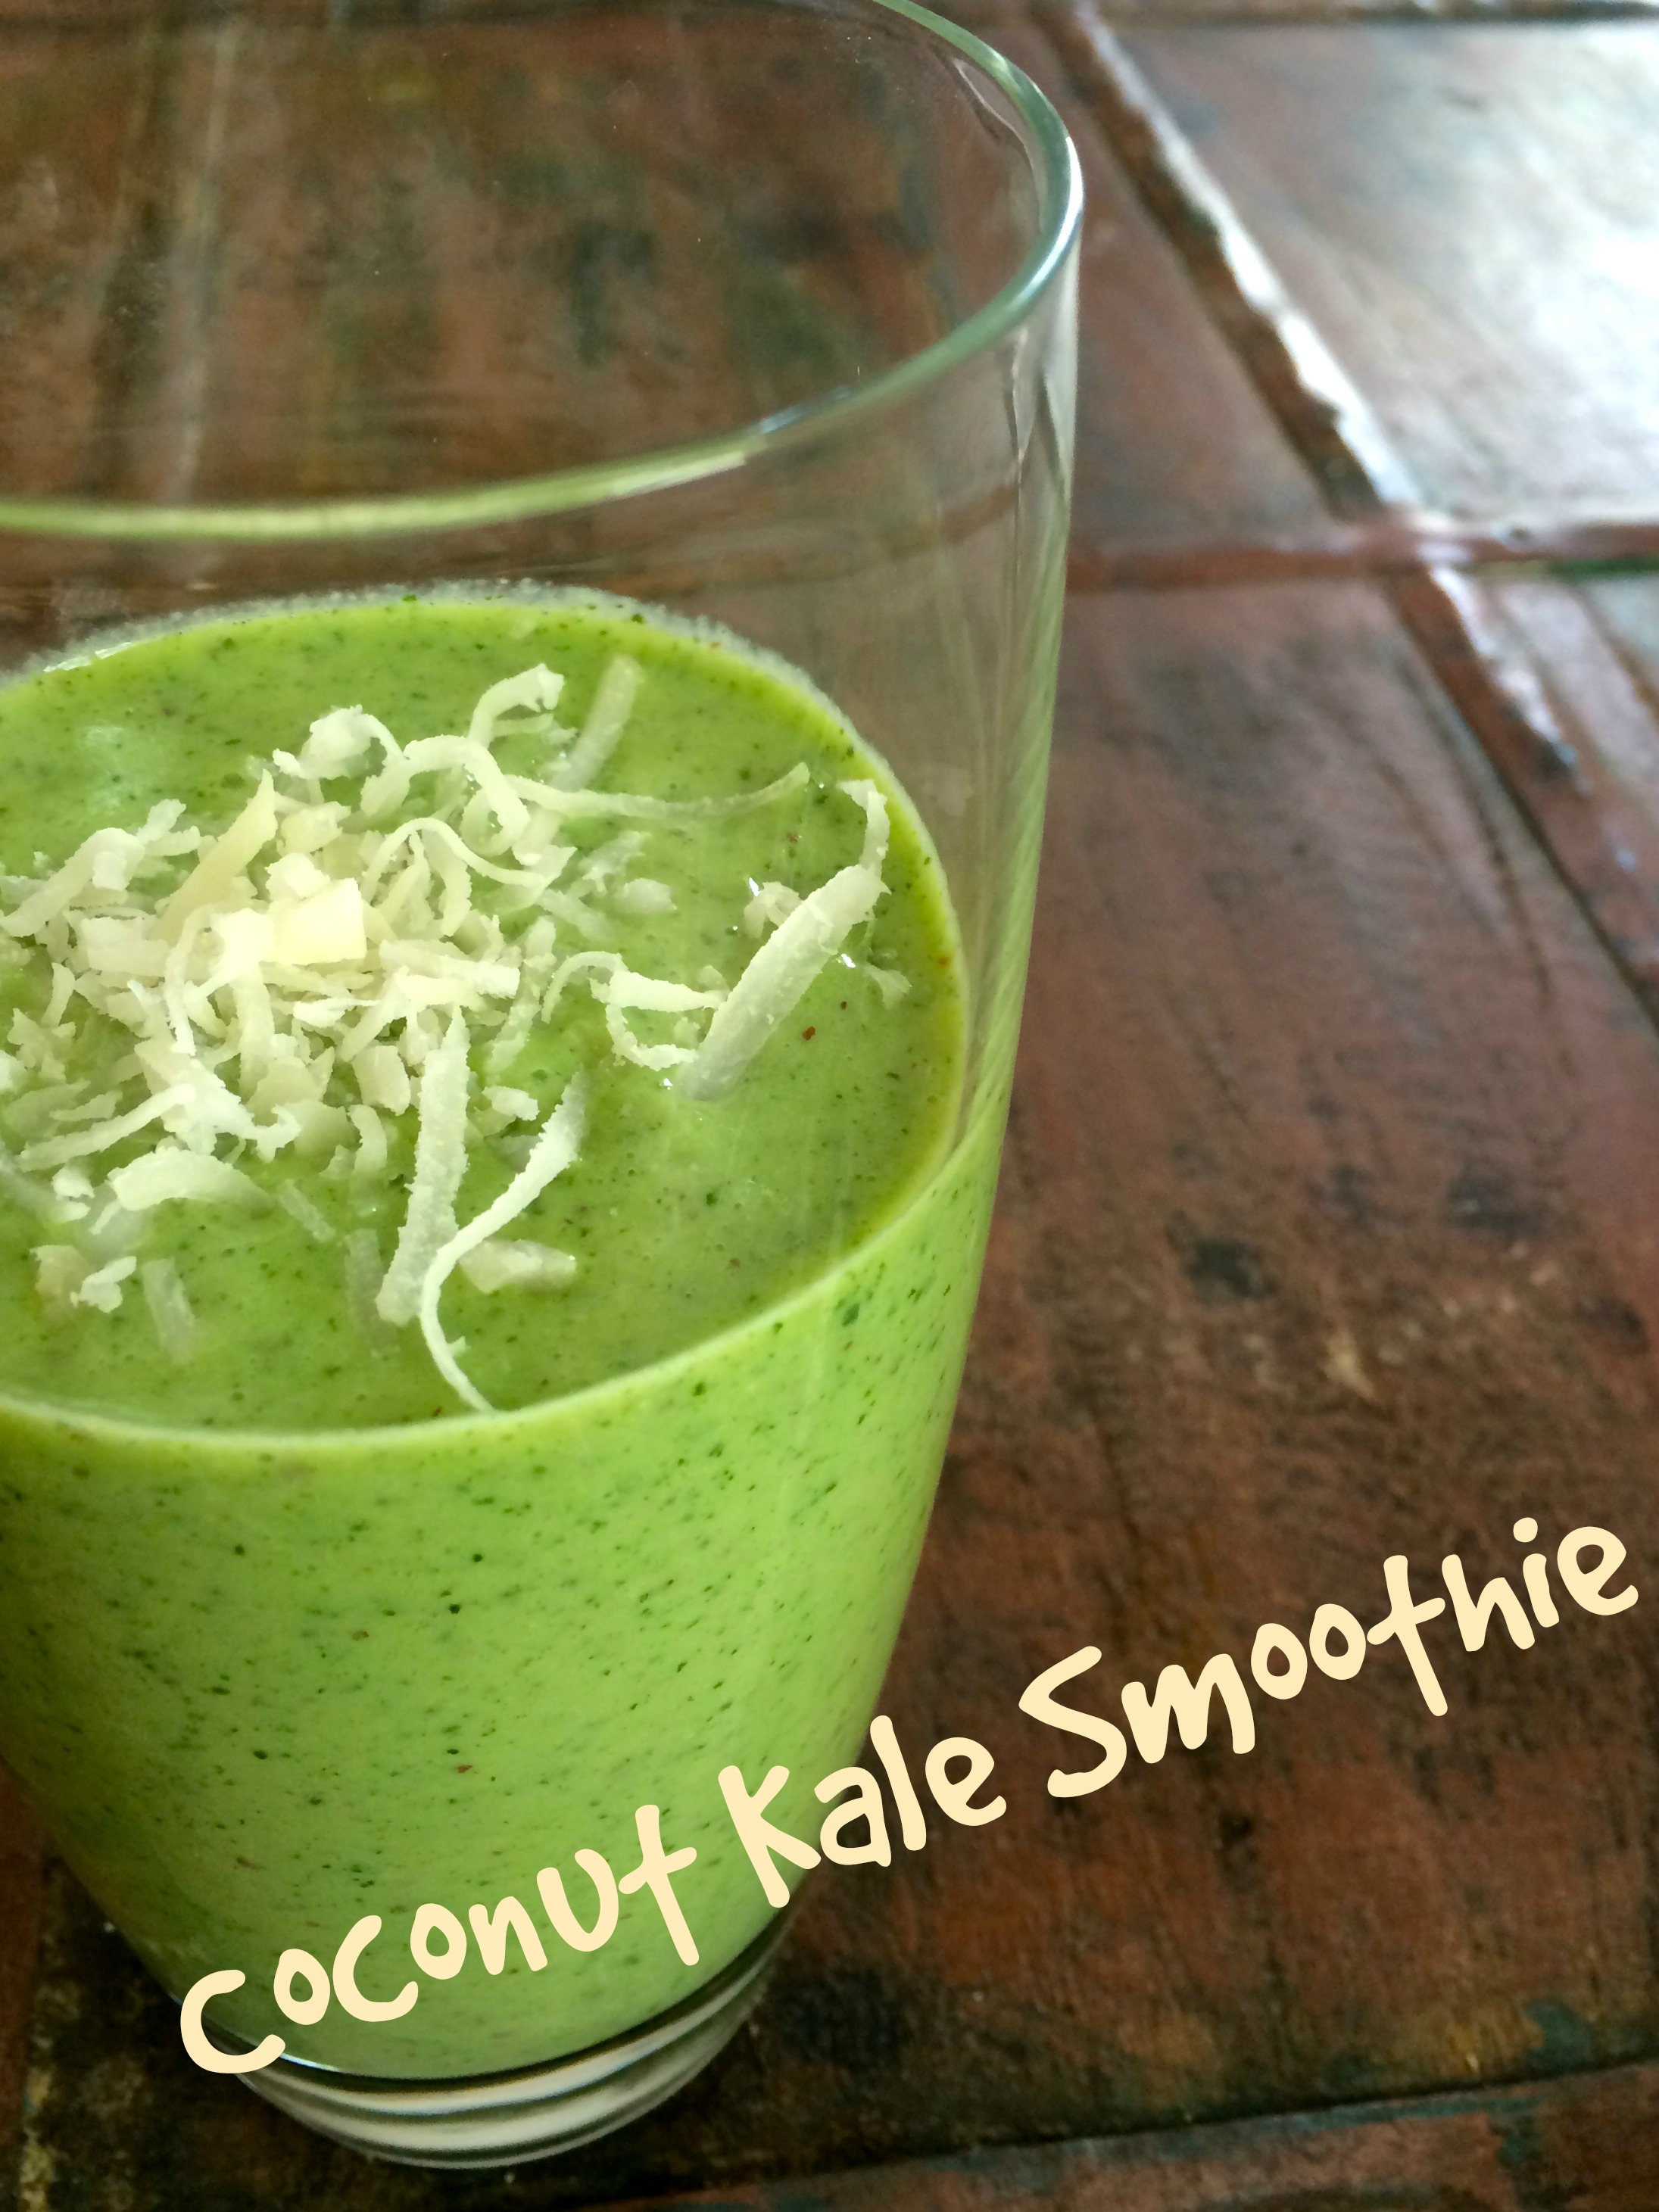 coconut.kale.smoothie